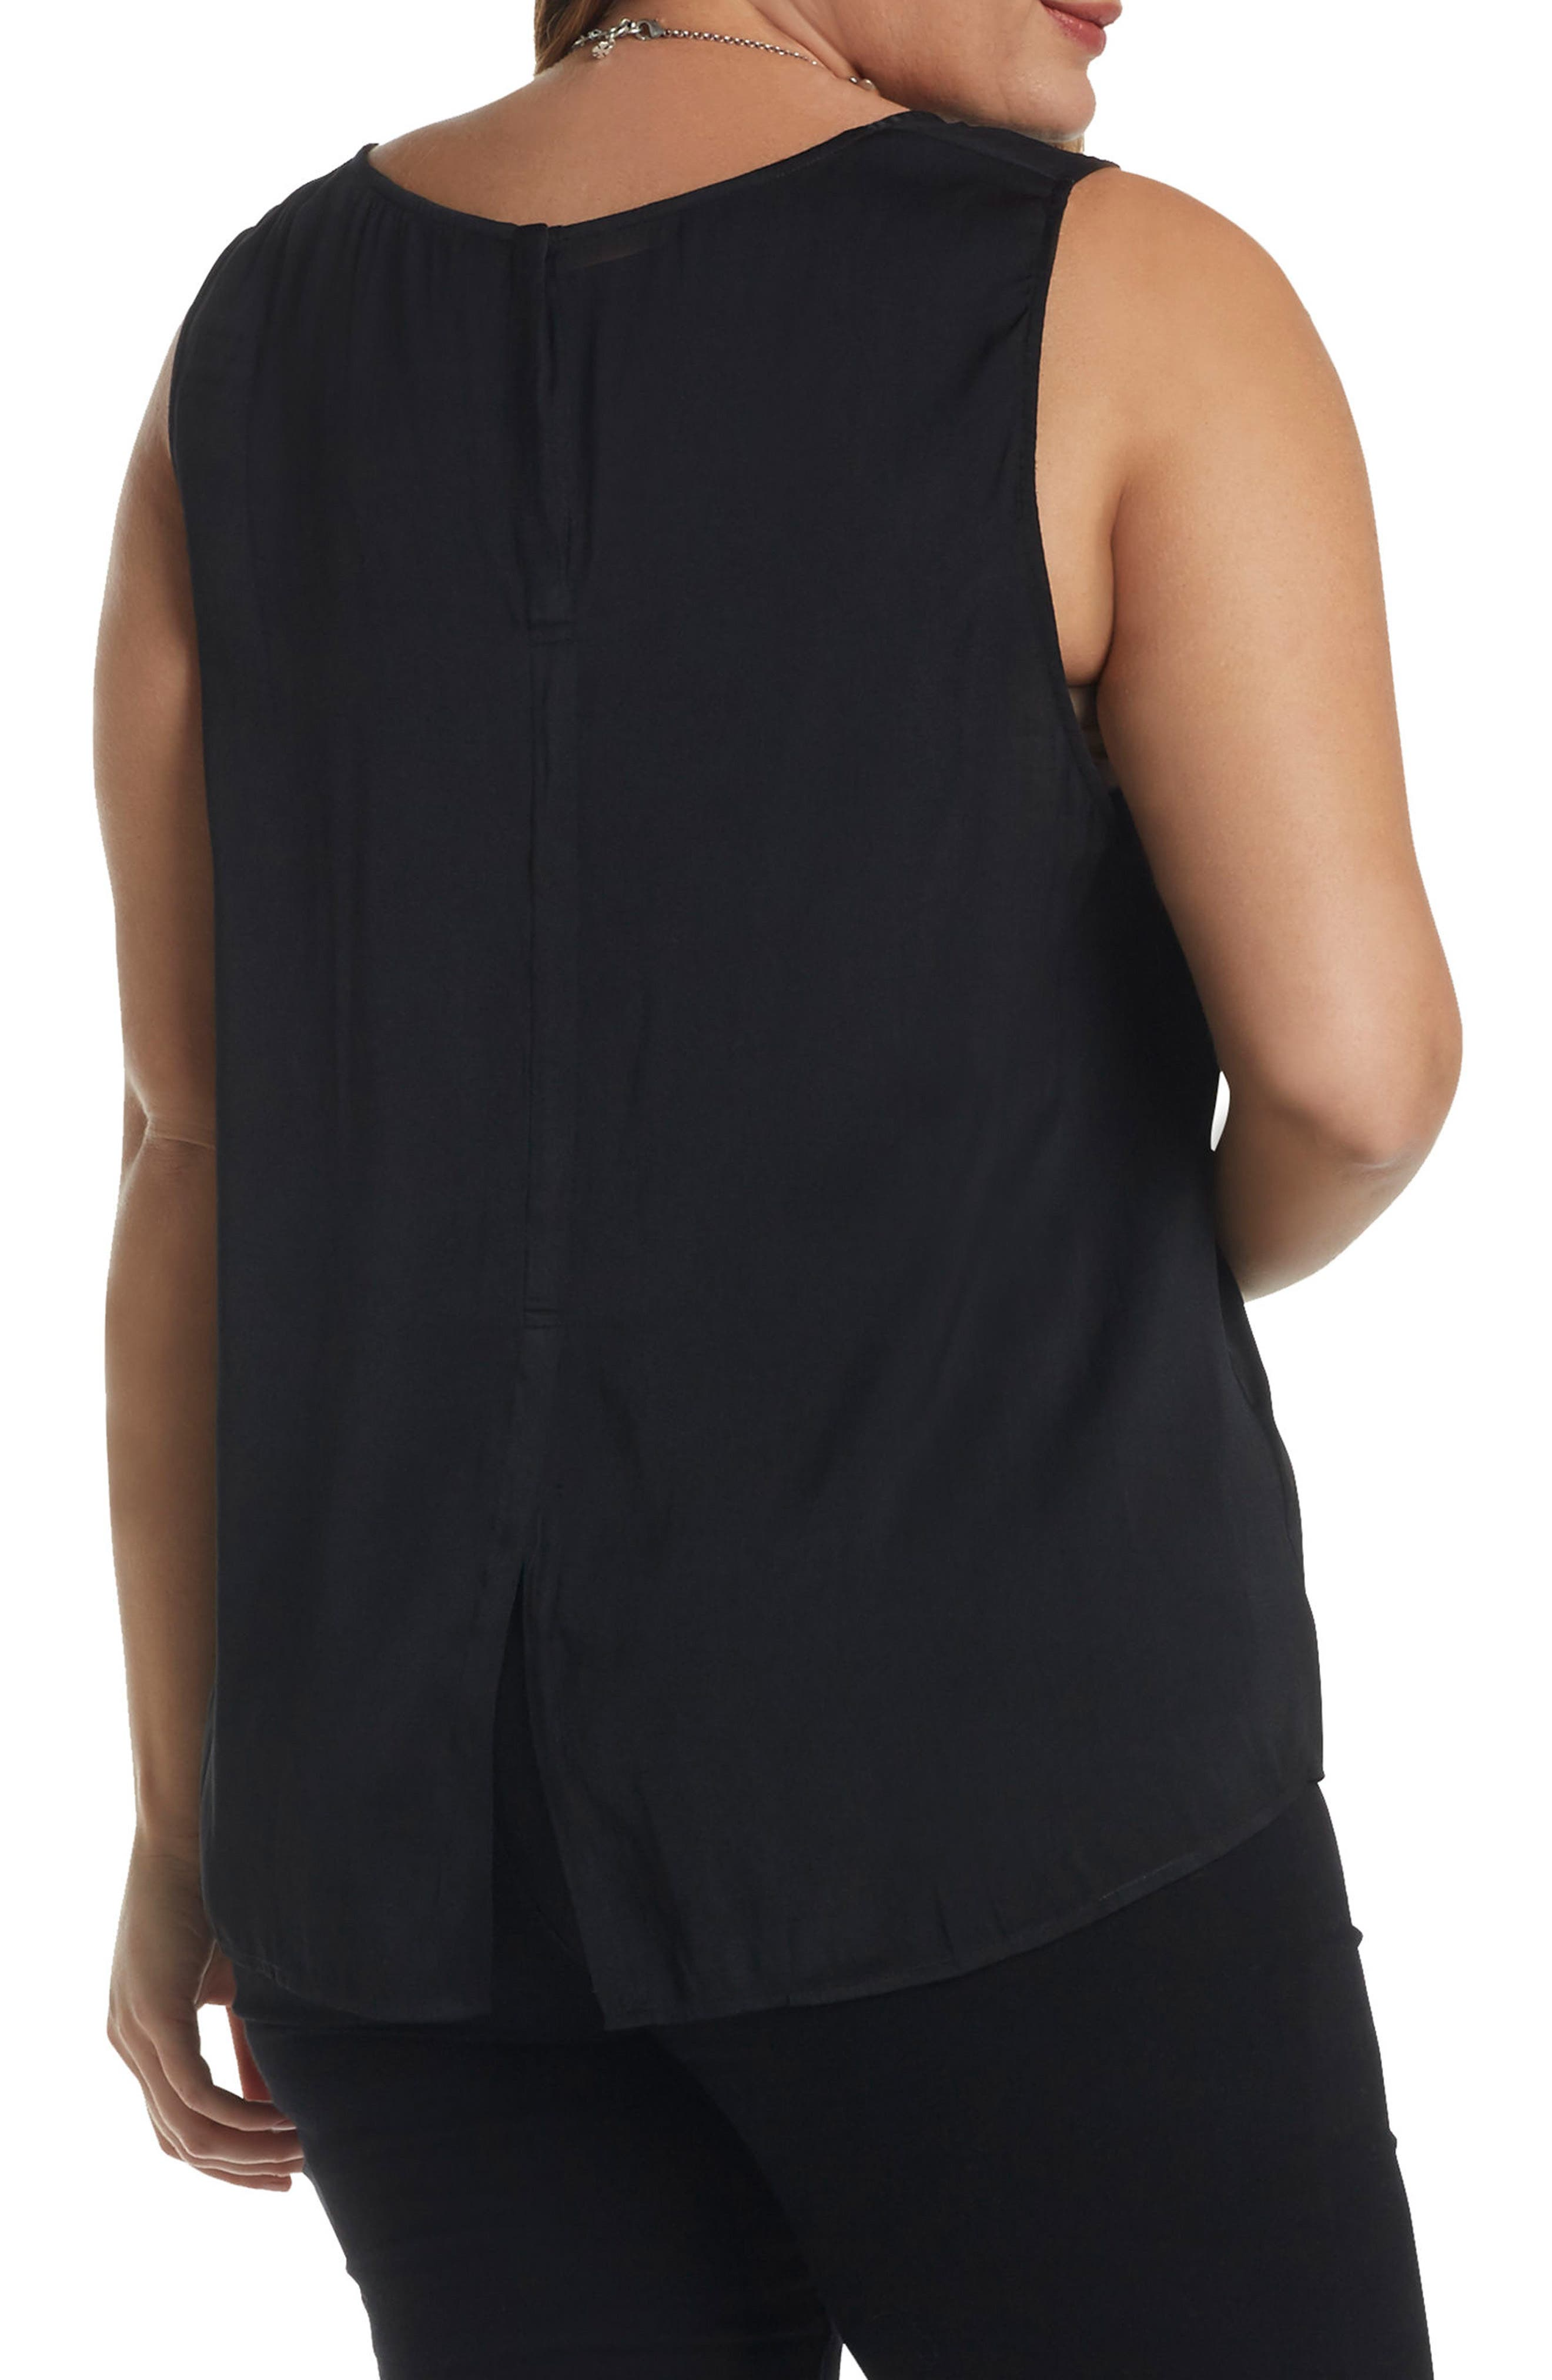 Angelle Sleeveless Top,                             Alternate thumbnail 2, color,                             001